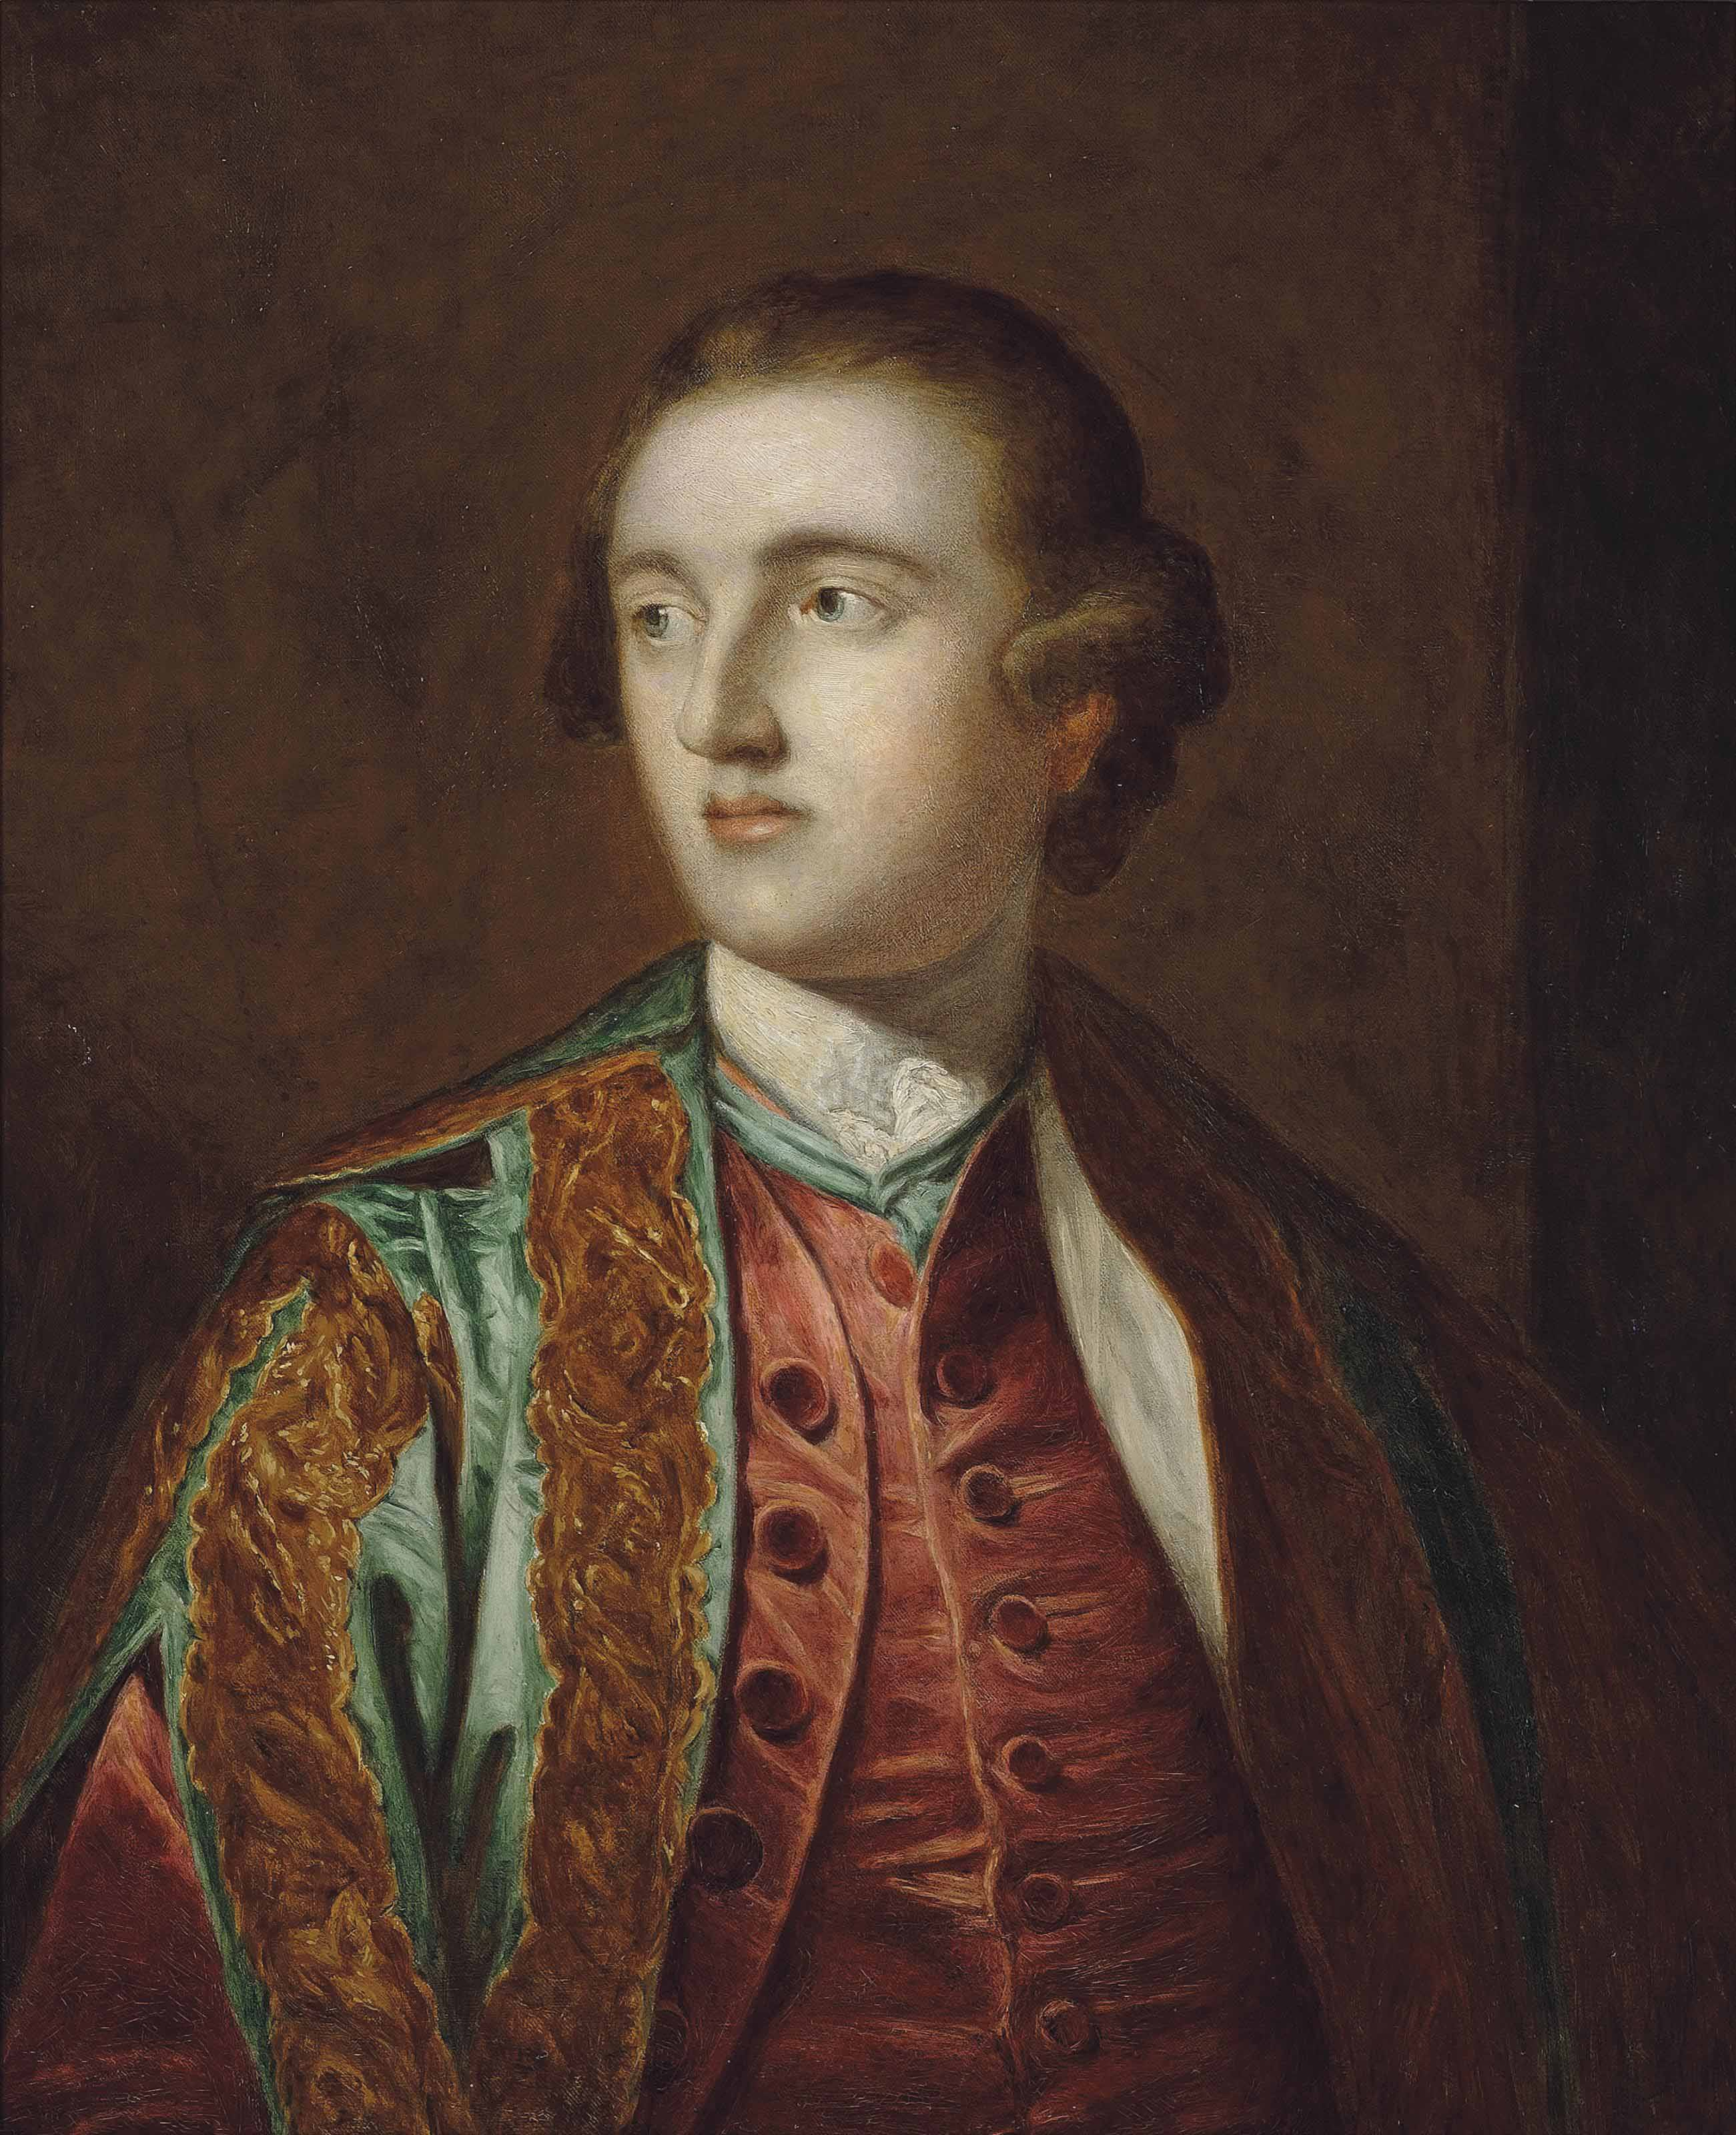 Portrait of Henry, 5th Duke of Beaufort, K.G. (1744-1803), bust-length, in a green embroidered coat